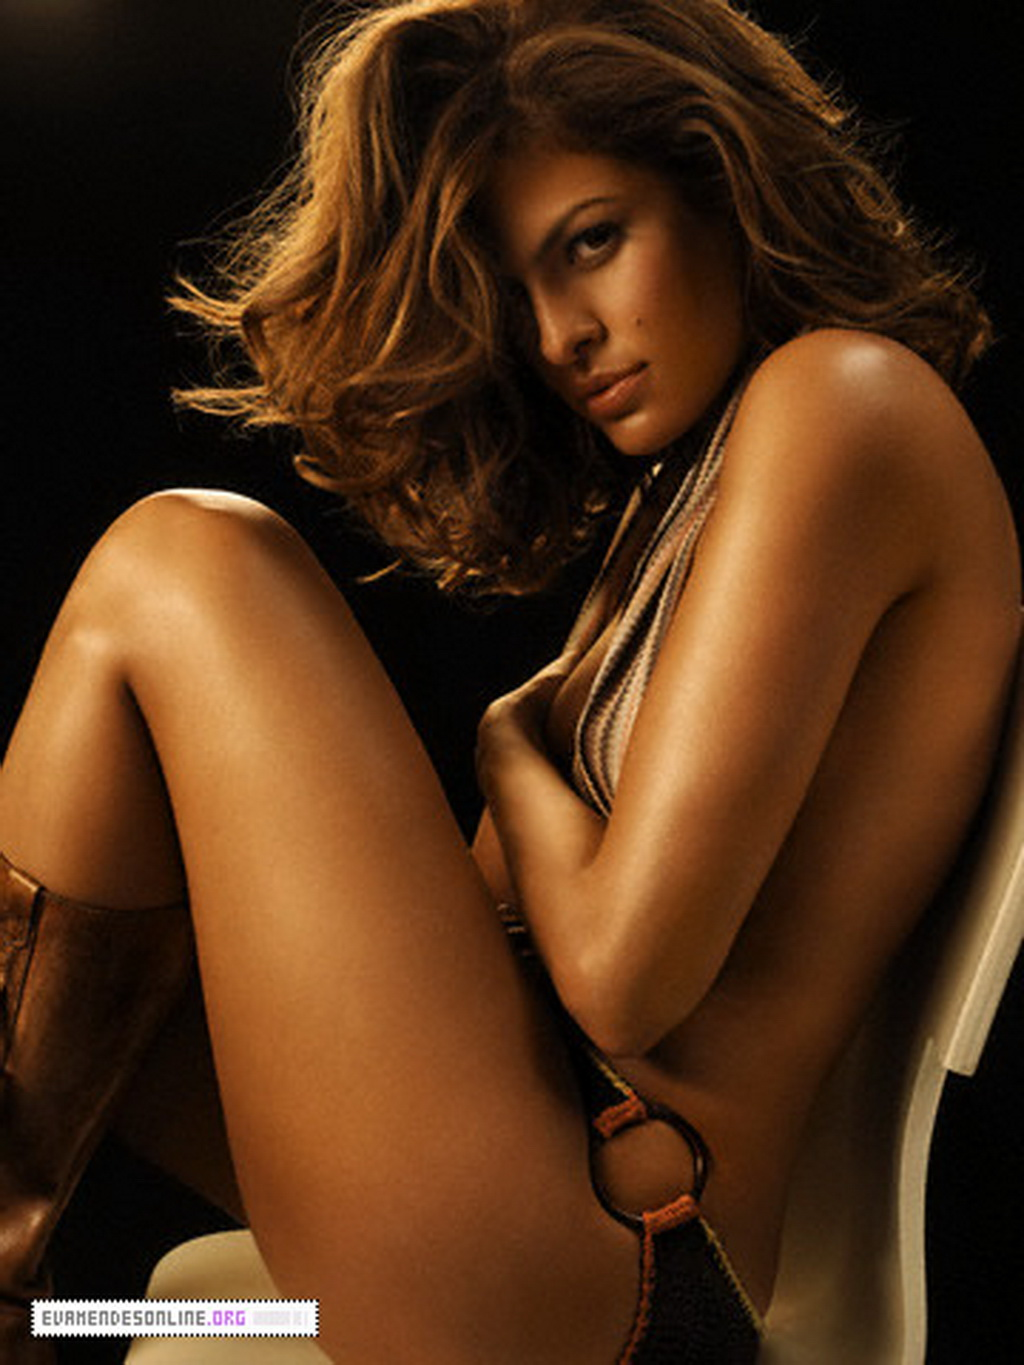 Eva mendes hot naked sorry, that